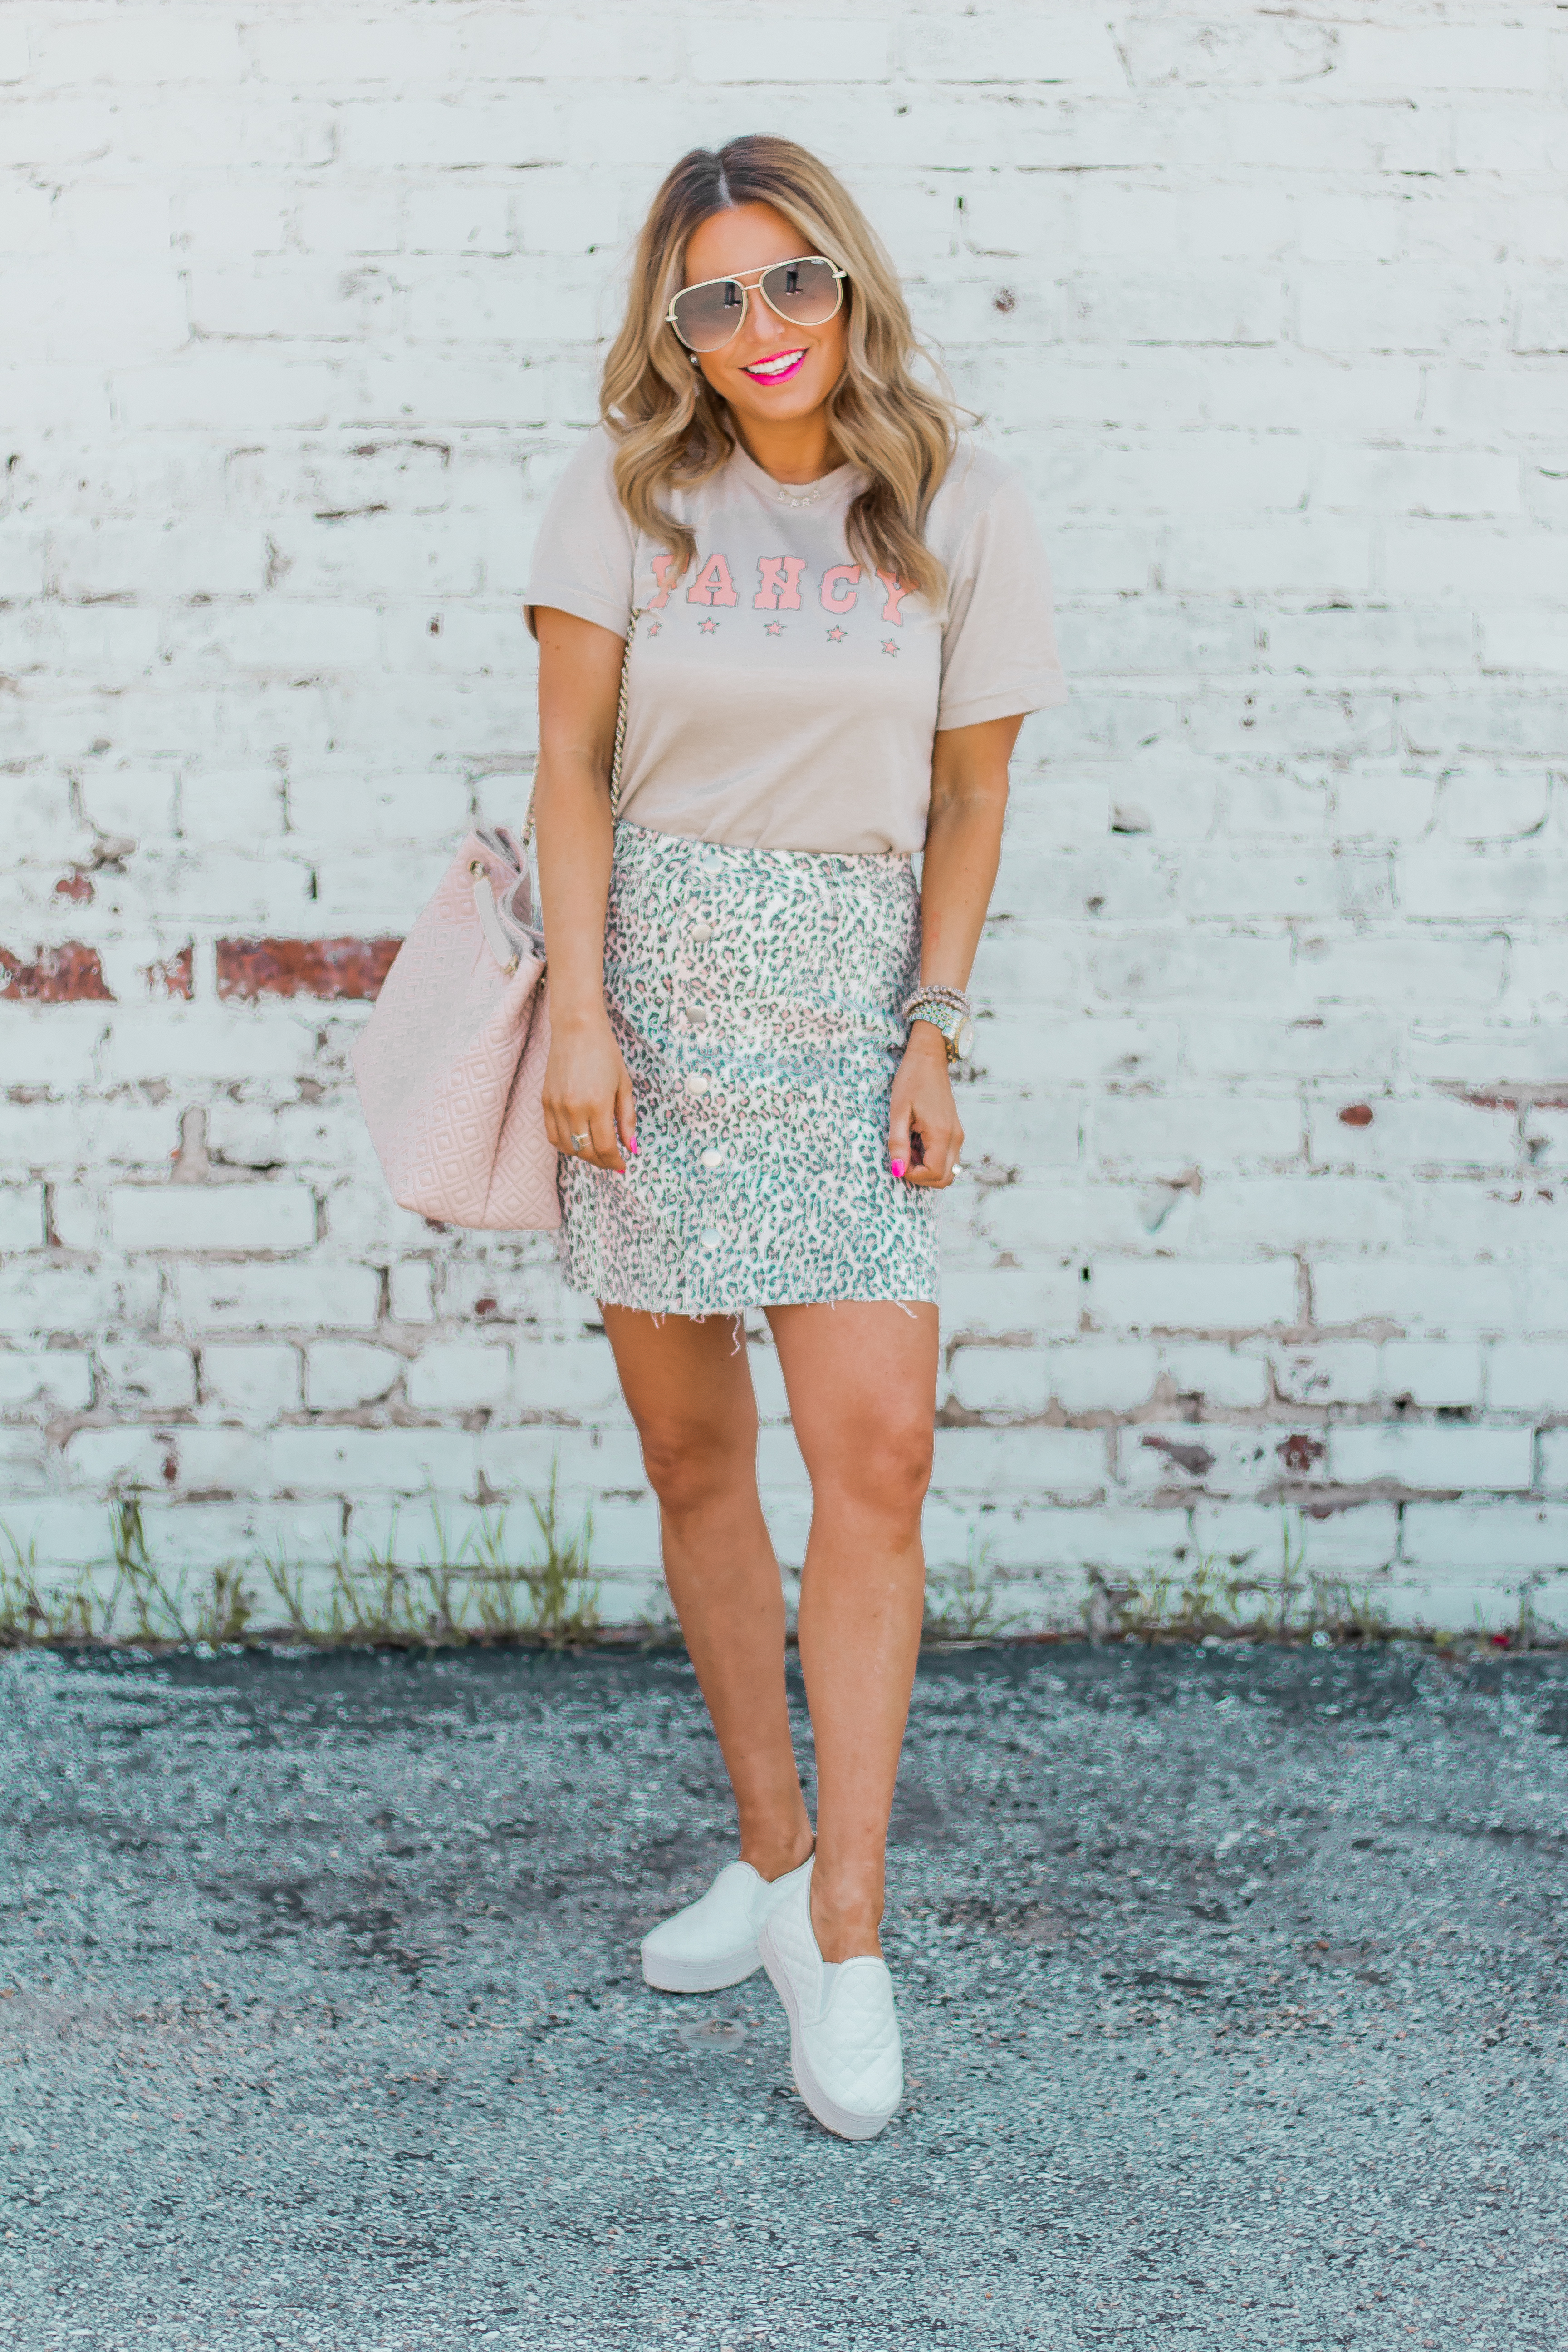 Fancy Graphic Tee-Leopard Skirt-Sugar Boutique-$250 Gift Card Giveaway-Tory Burch Fleming Bag-Quay Sunglasses-Sabby Style-Omaha Blogger-Women's Fashion-Spring Fashion-Summer Outfit-7